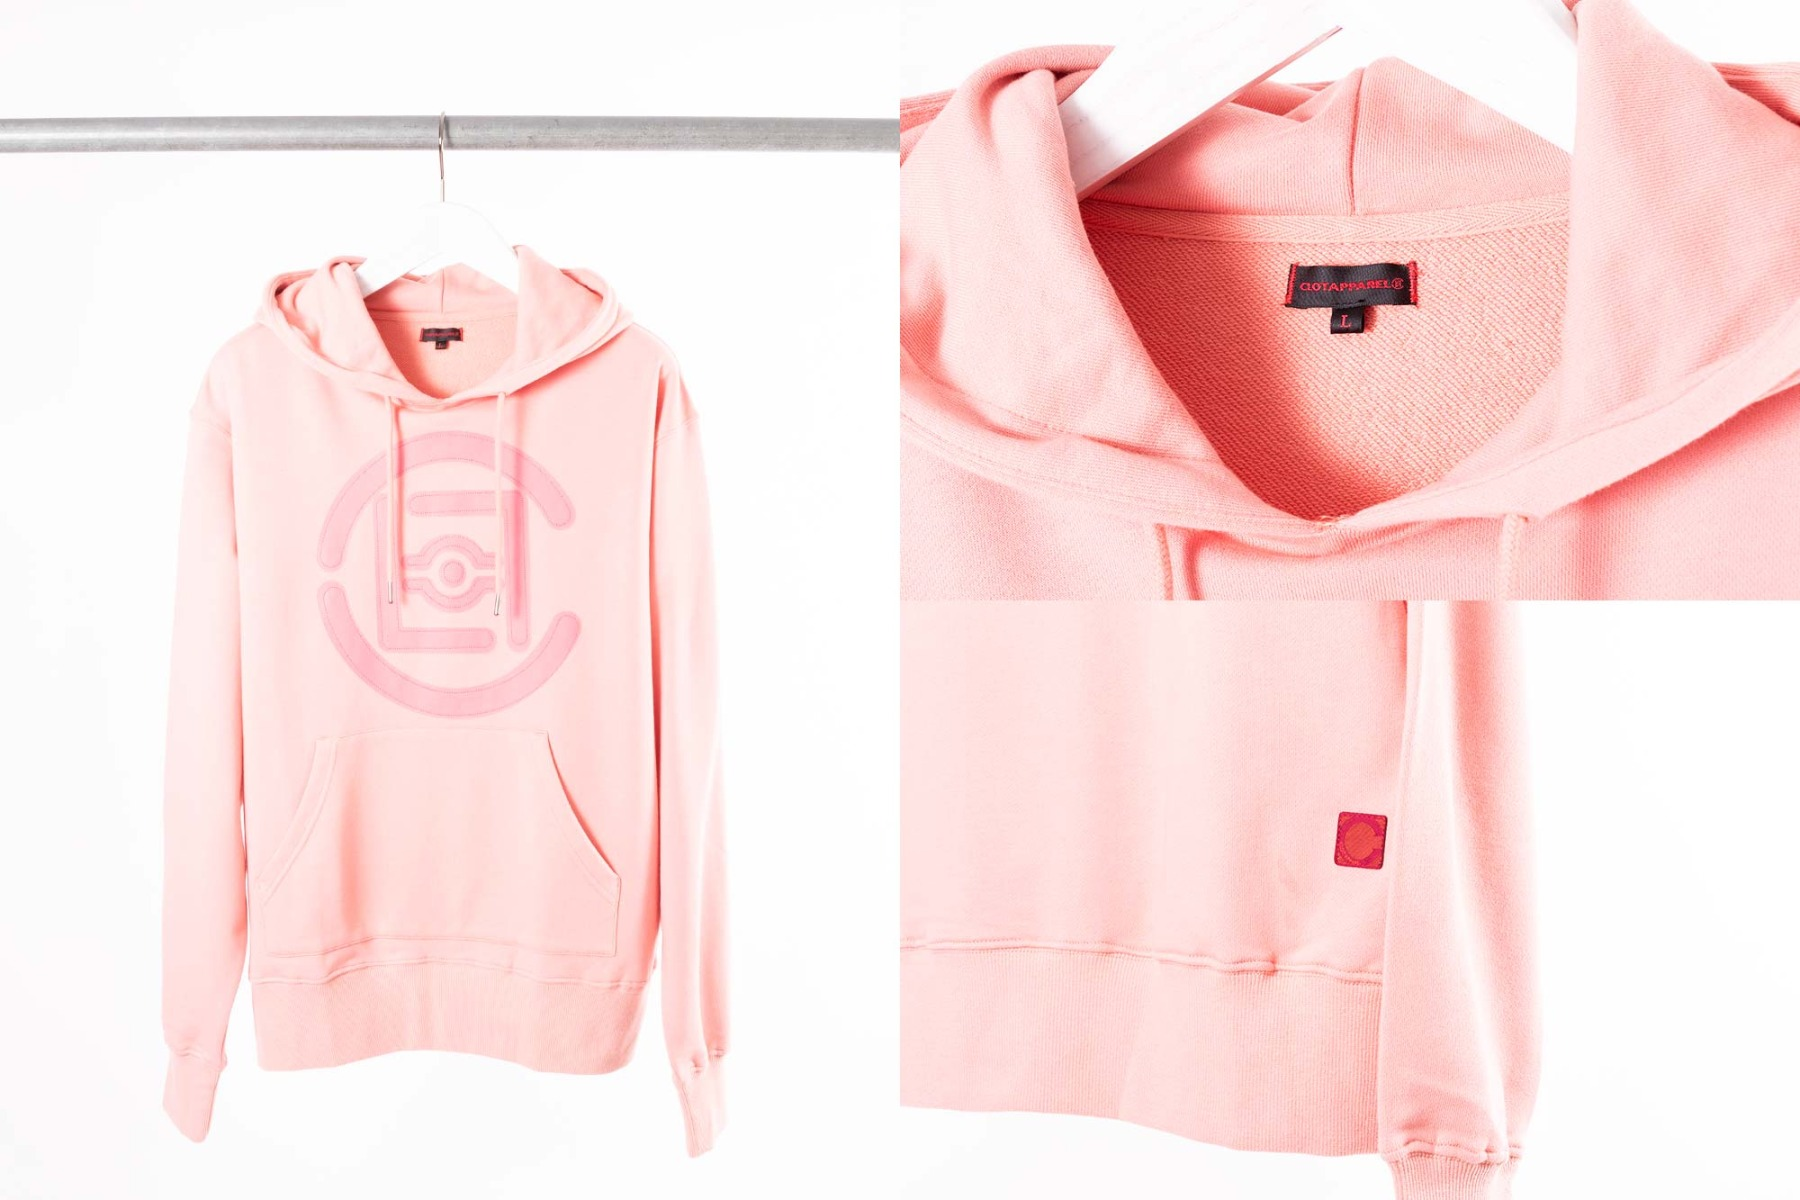 CLOT Fifth Elemental Hoody in pink